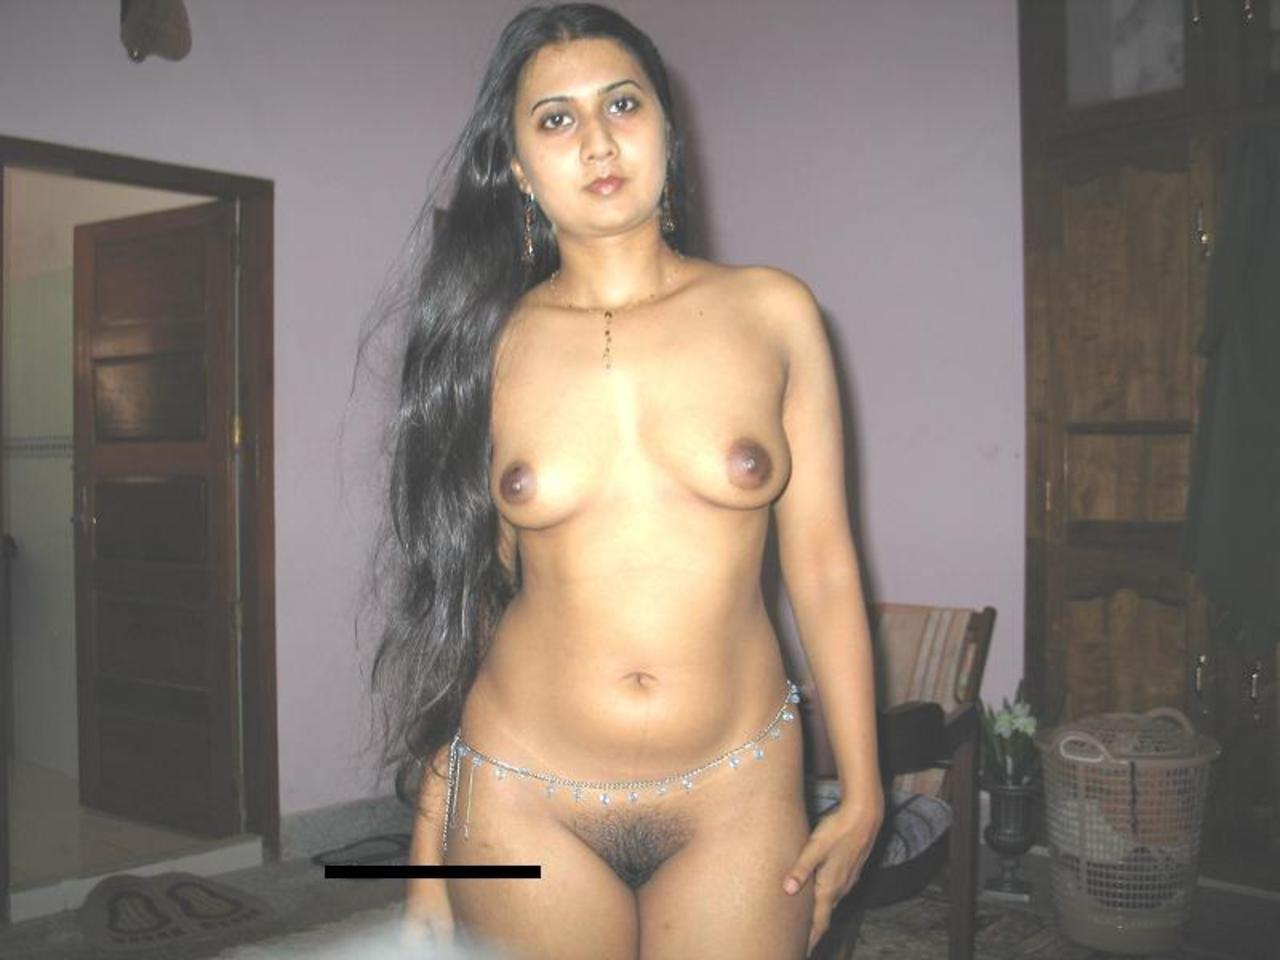 Nagaland girl nude phots nsfw comic